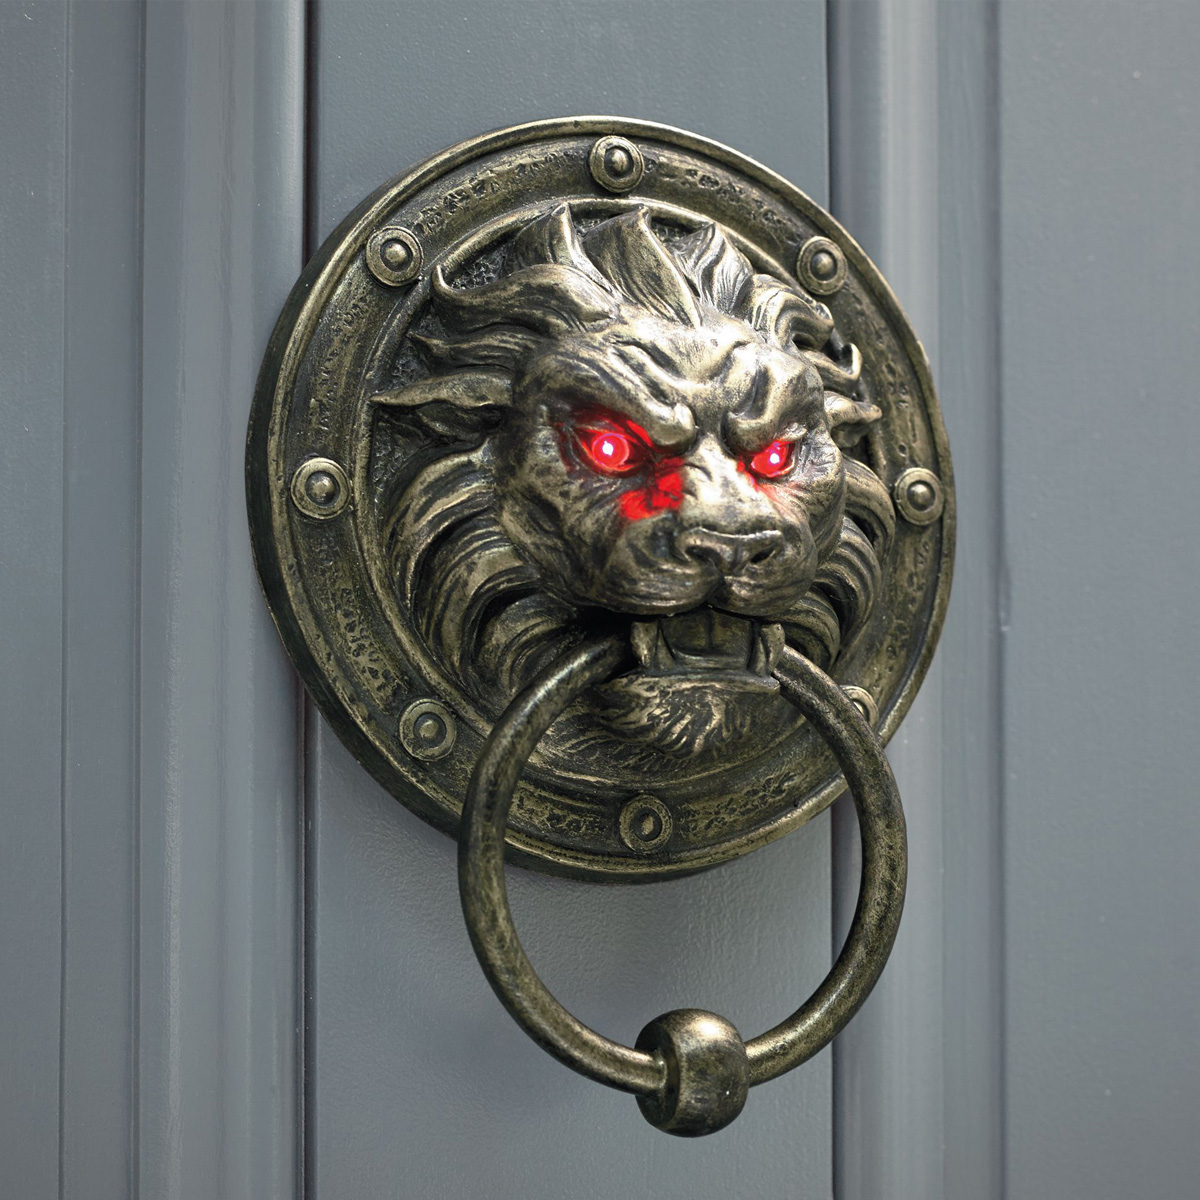 Door Nocker Creepy Lion Door Knocker With Glowing Eyes